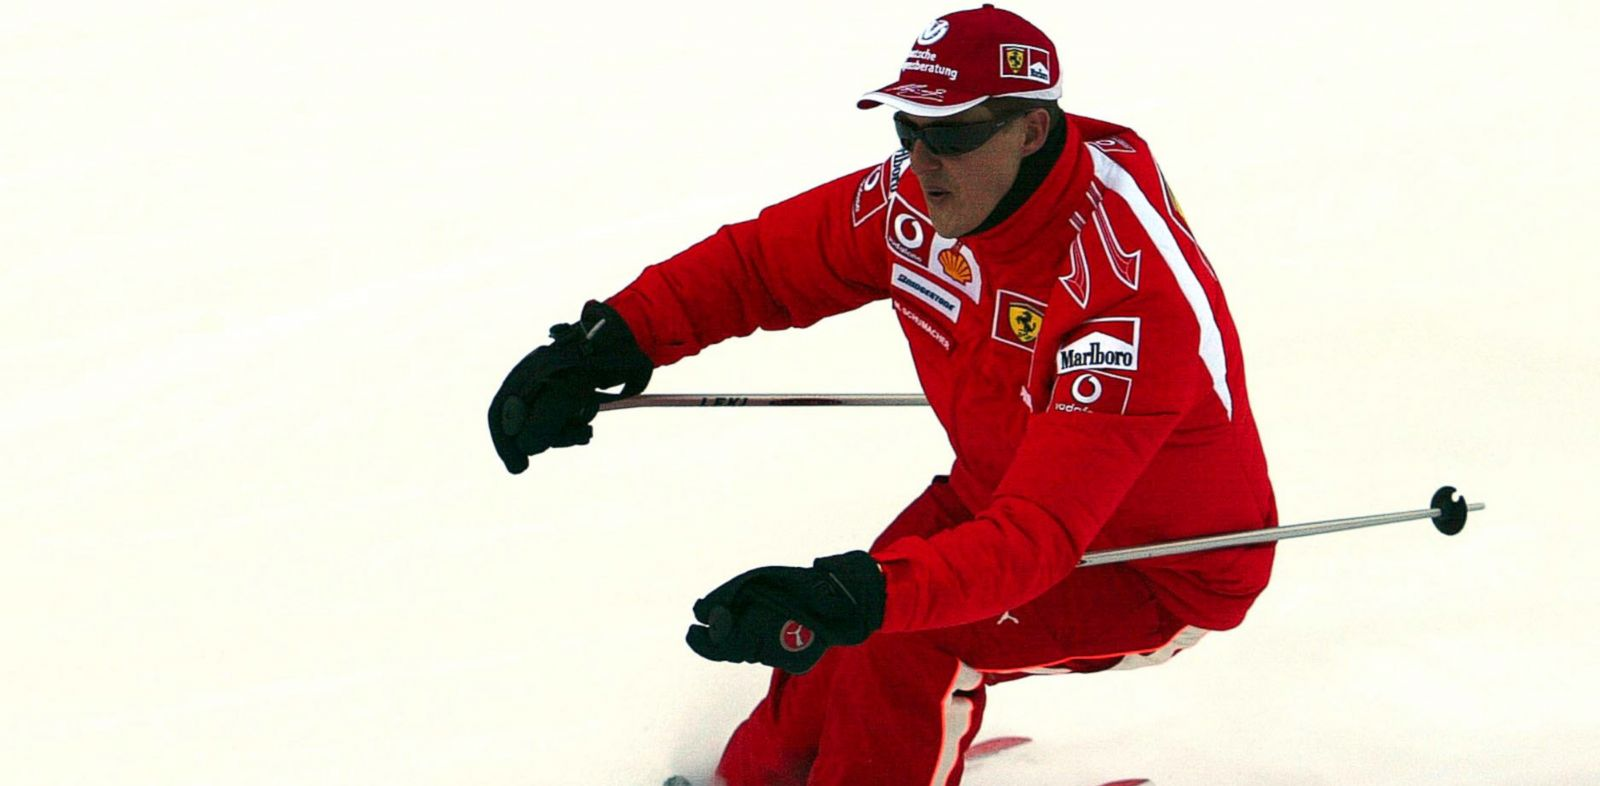 PHOTO: Formula One driver Michael Schumacher of Germany speeds down a course in the Madonna di Campiglio ski resort, in the Italian Alps on Jan. 12, 2006.